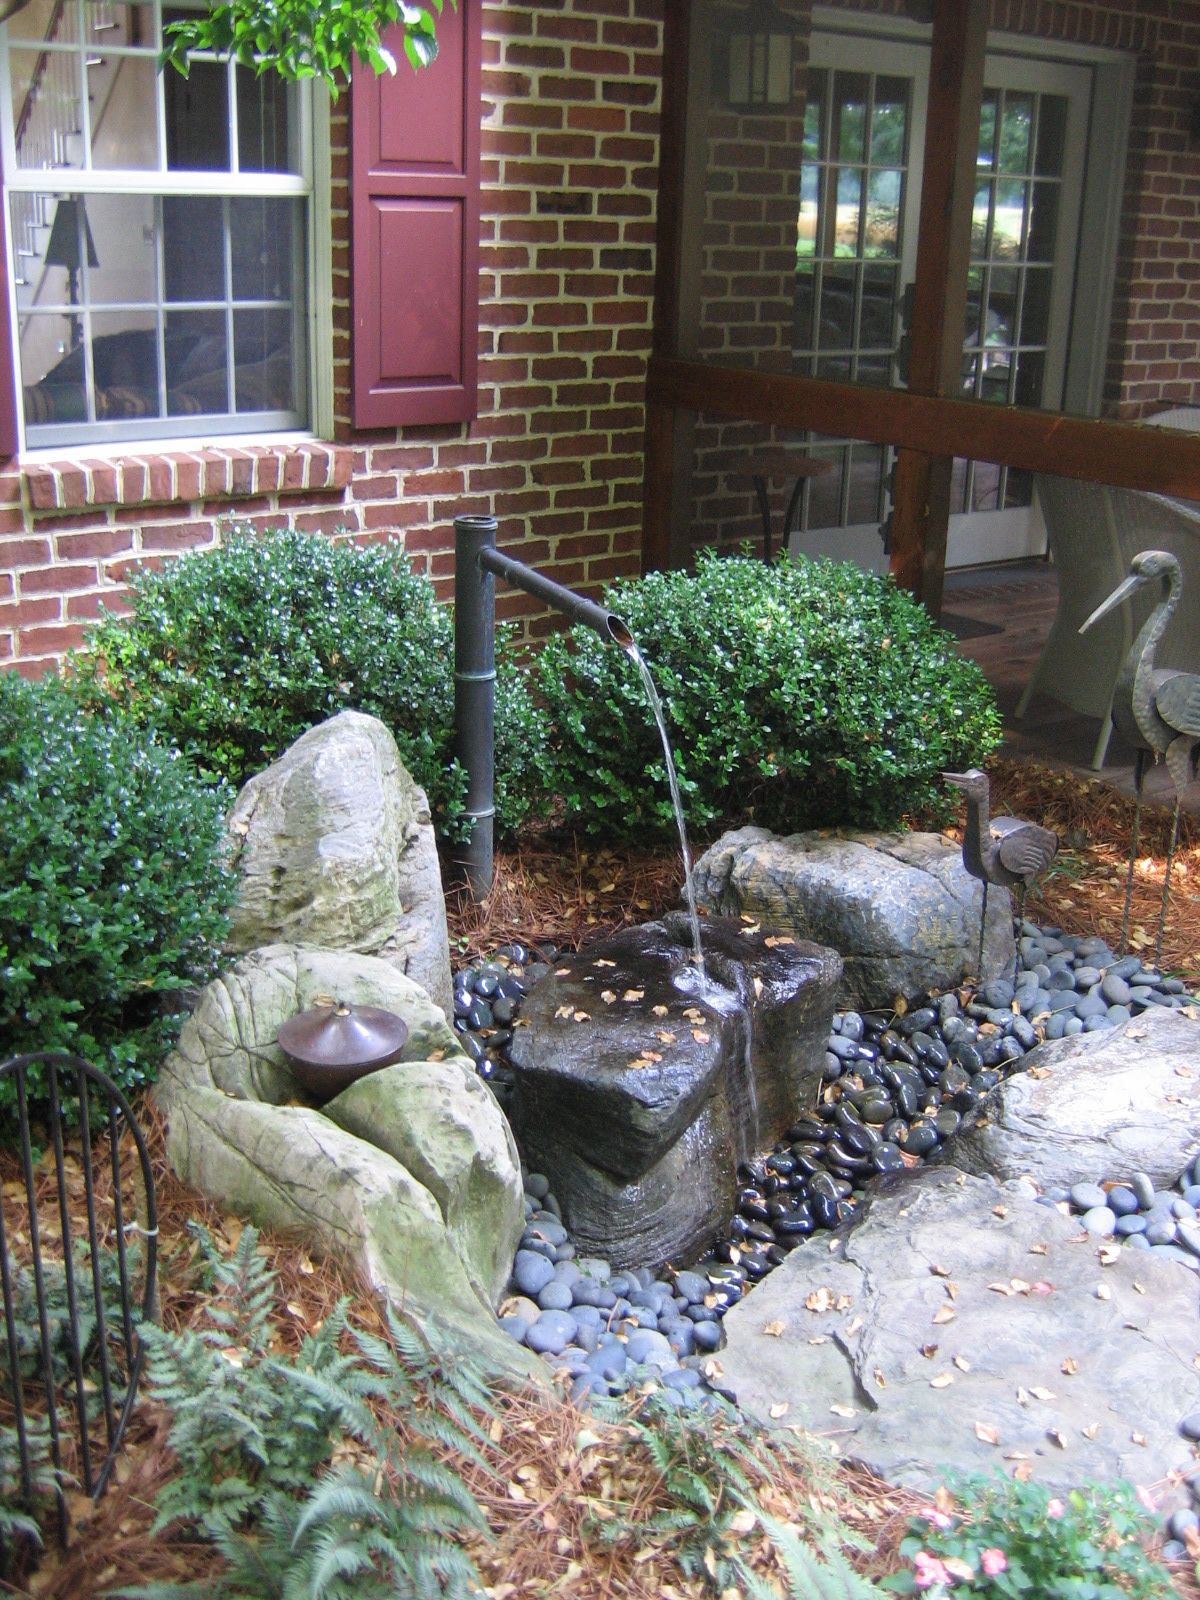 Tsukubai flows onto treasured stone which client saved from childhood, Elizabethtown, PA